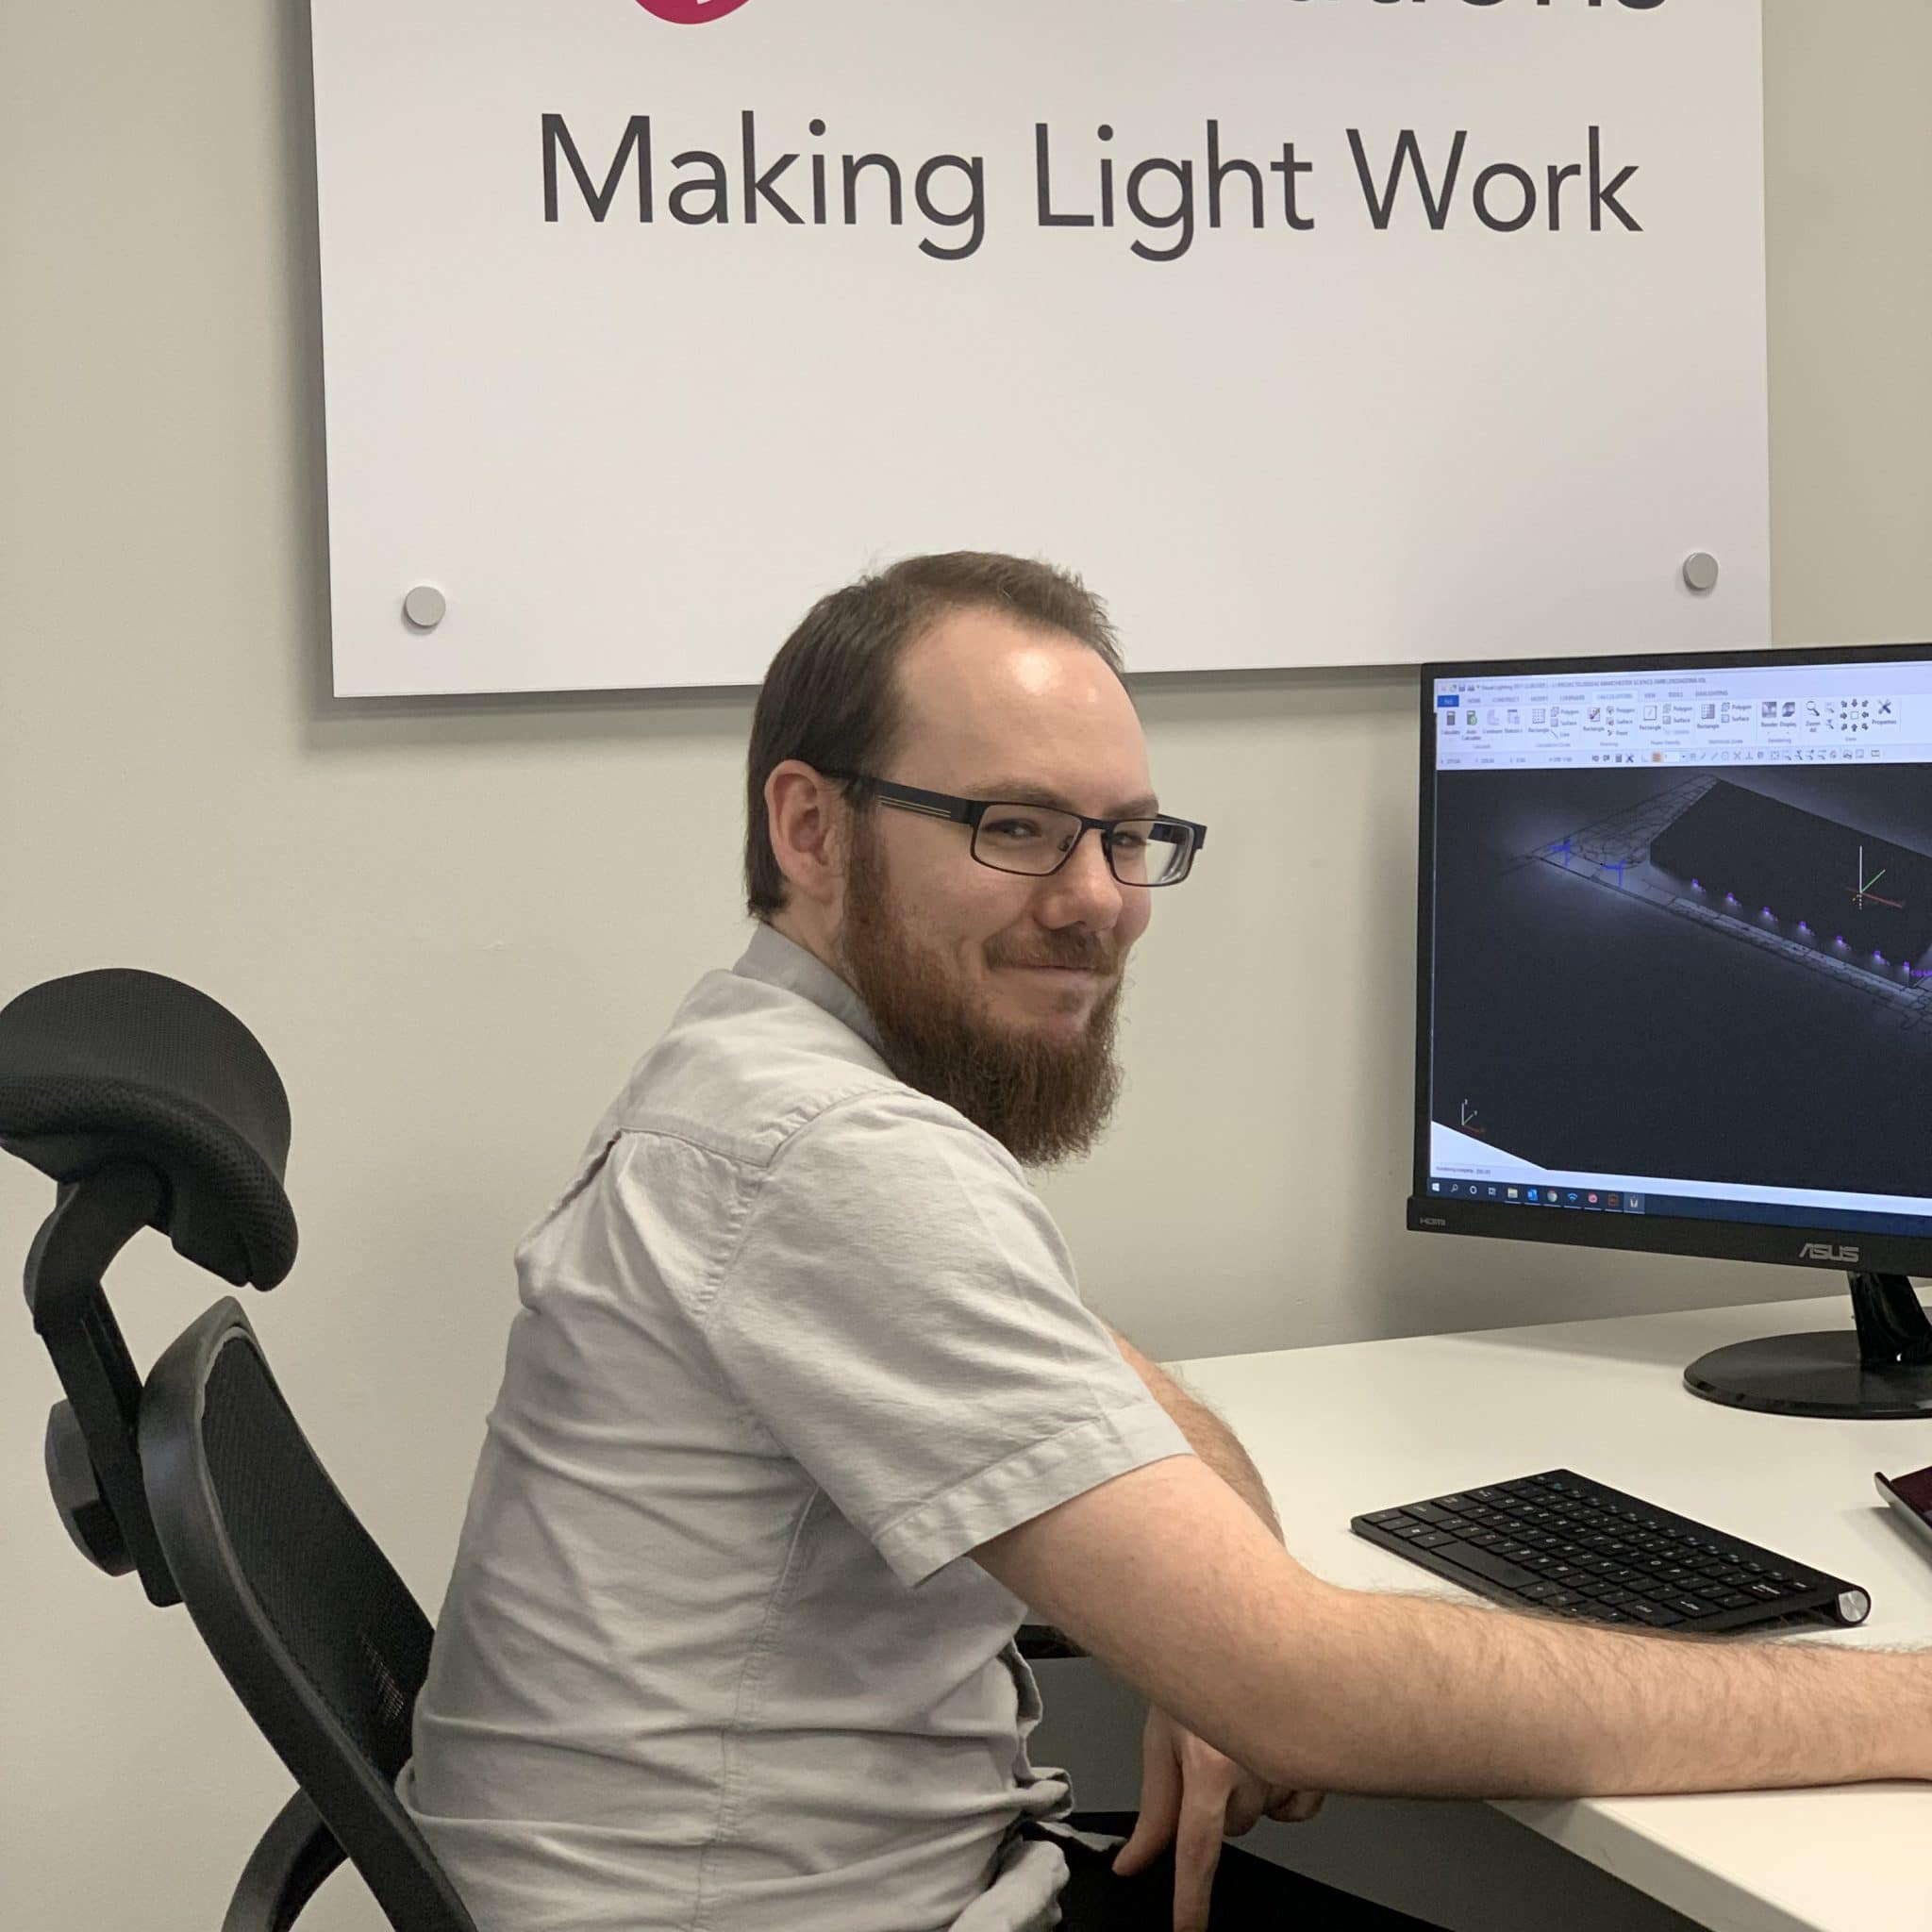 Lighting Project Solutions Welcomes Mark to the Team!